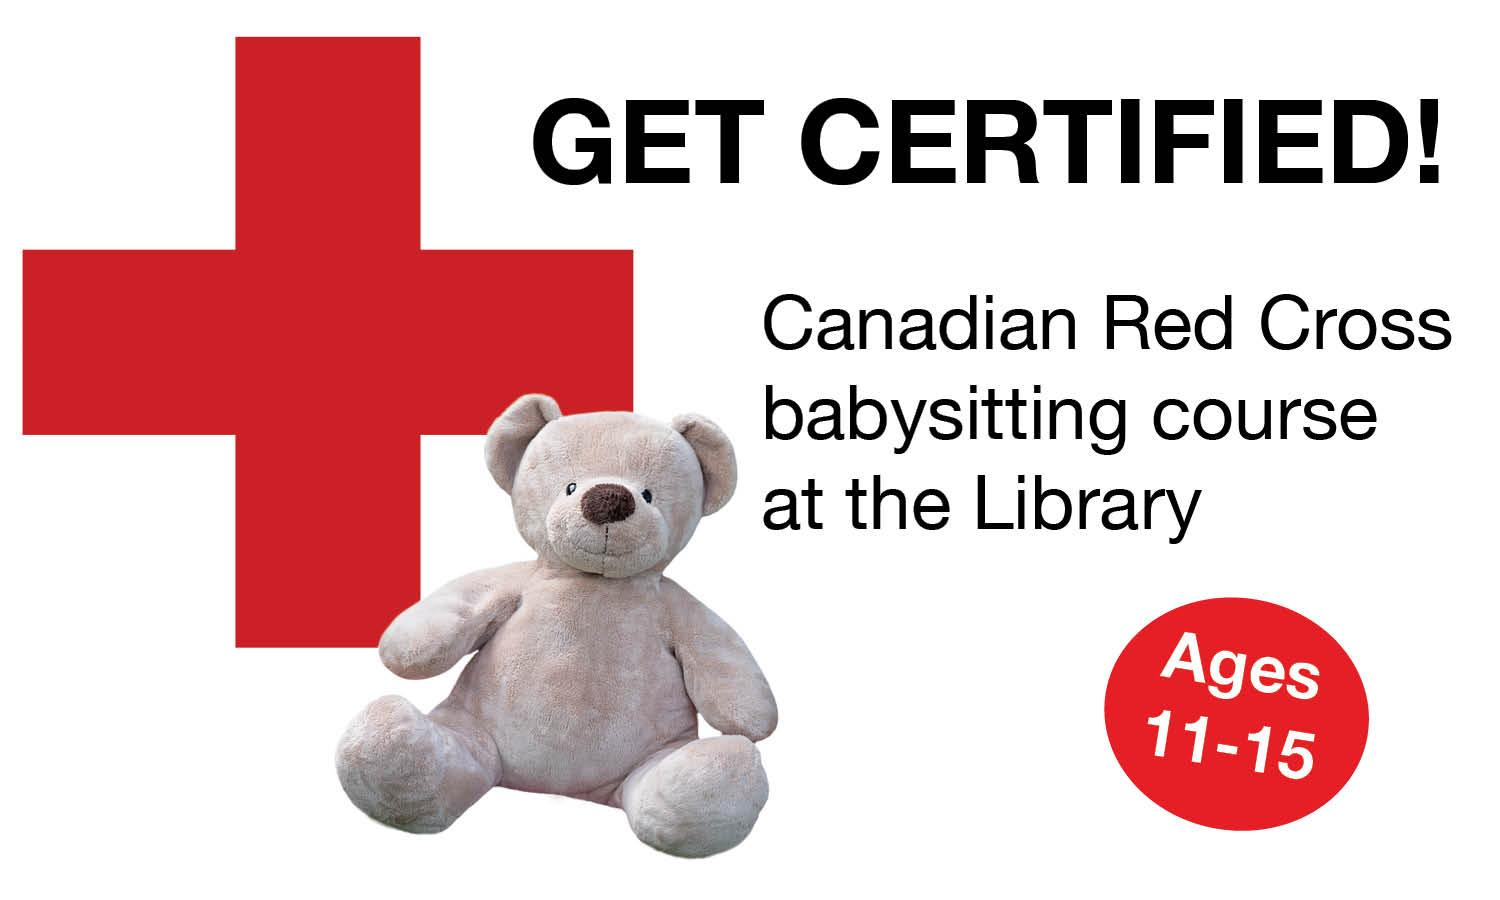 Red cross babysitting course fall 2017 central library 25 red cross babysitting course fall 2017 central library xflitez Images